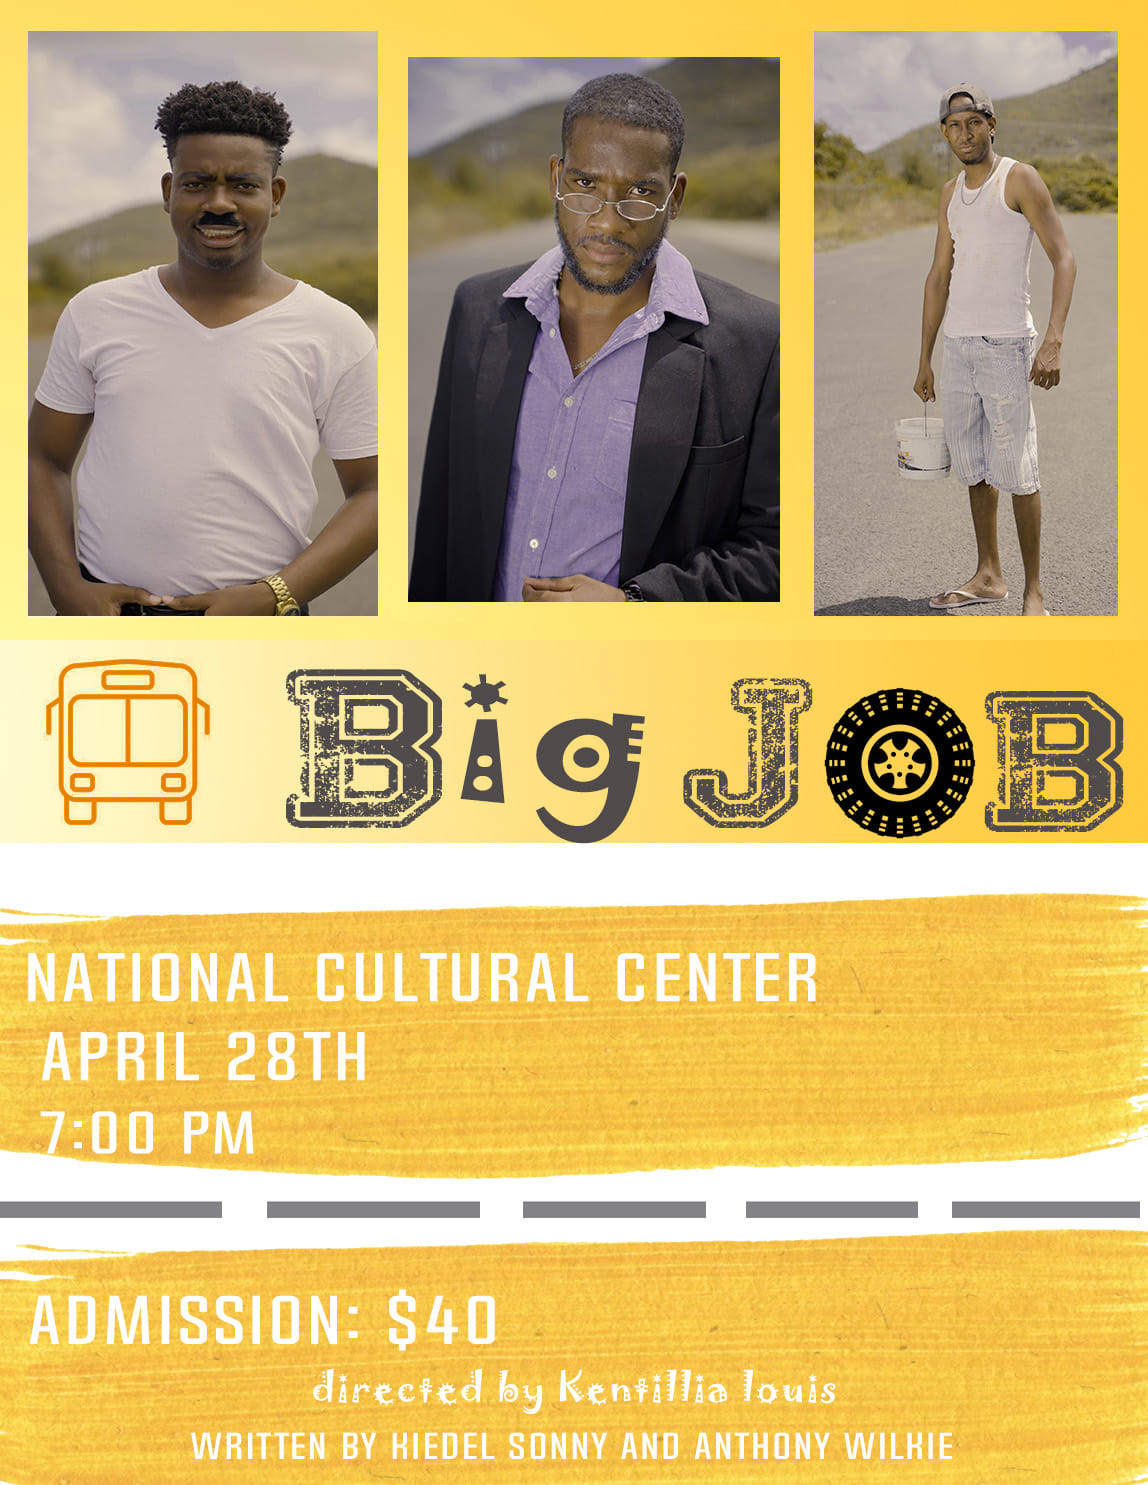 Kiedel Sonny and Anthony Wilkie in collaboration with Youthspac and CDF present A Big Job at the National Cultural Center, April 28th see you there.